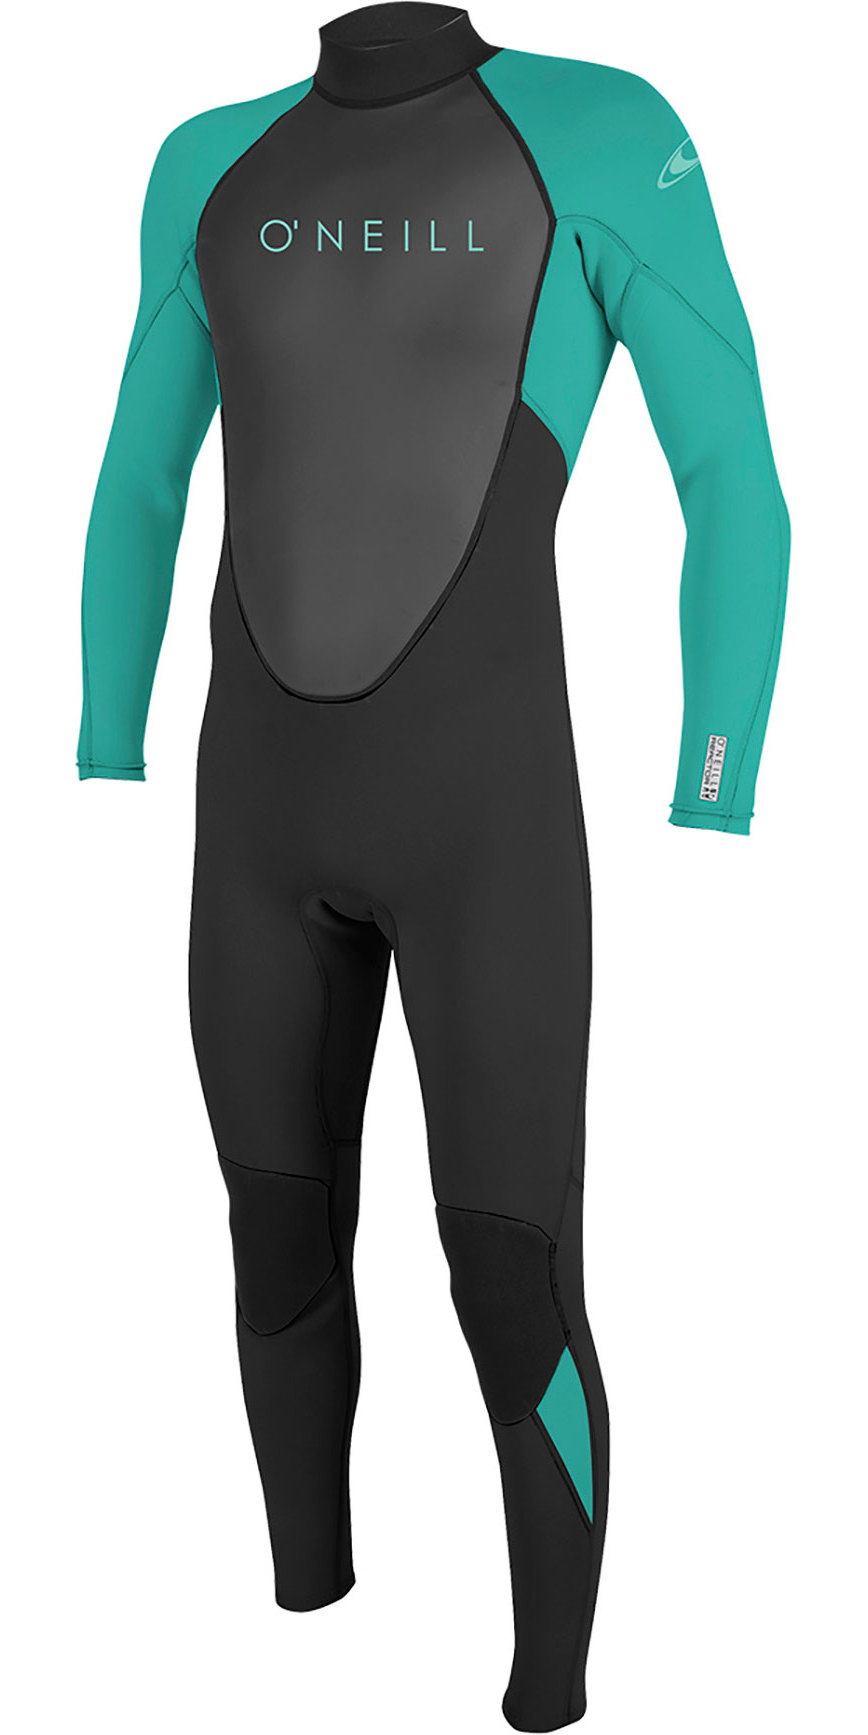 2019 O'Neill Youth Reactor II 3/2mm Back Zip Wetsuit Black / Aqua 5044